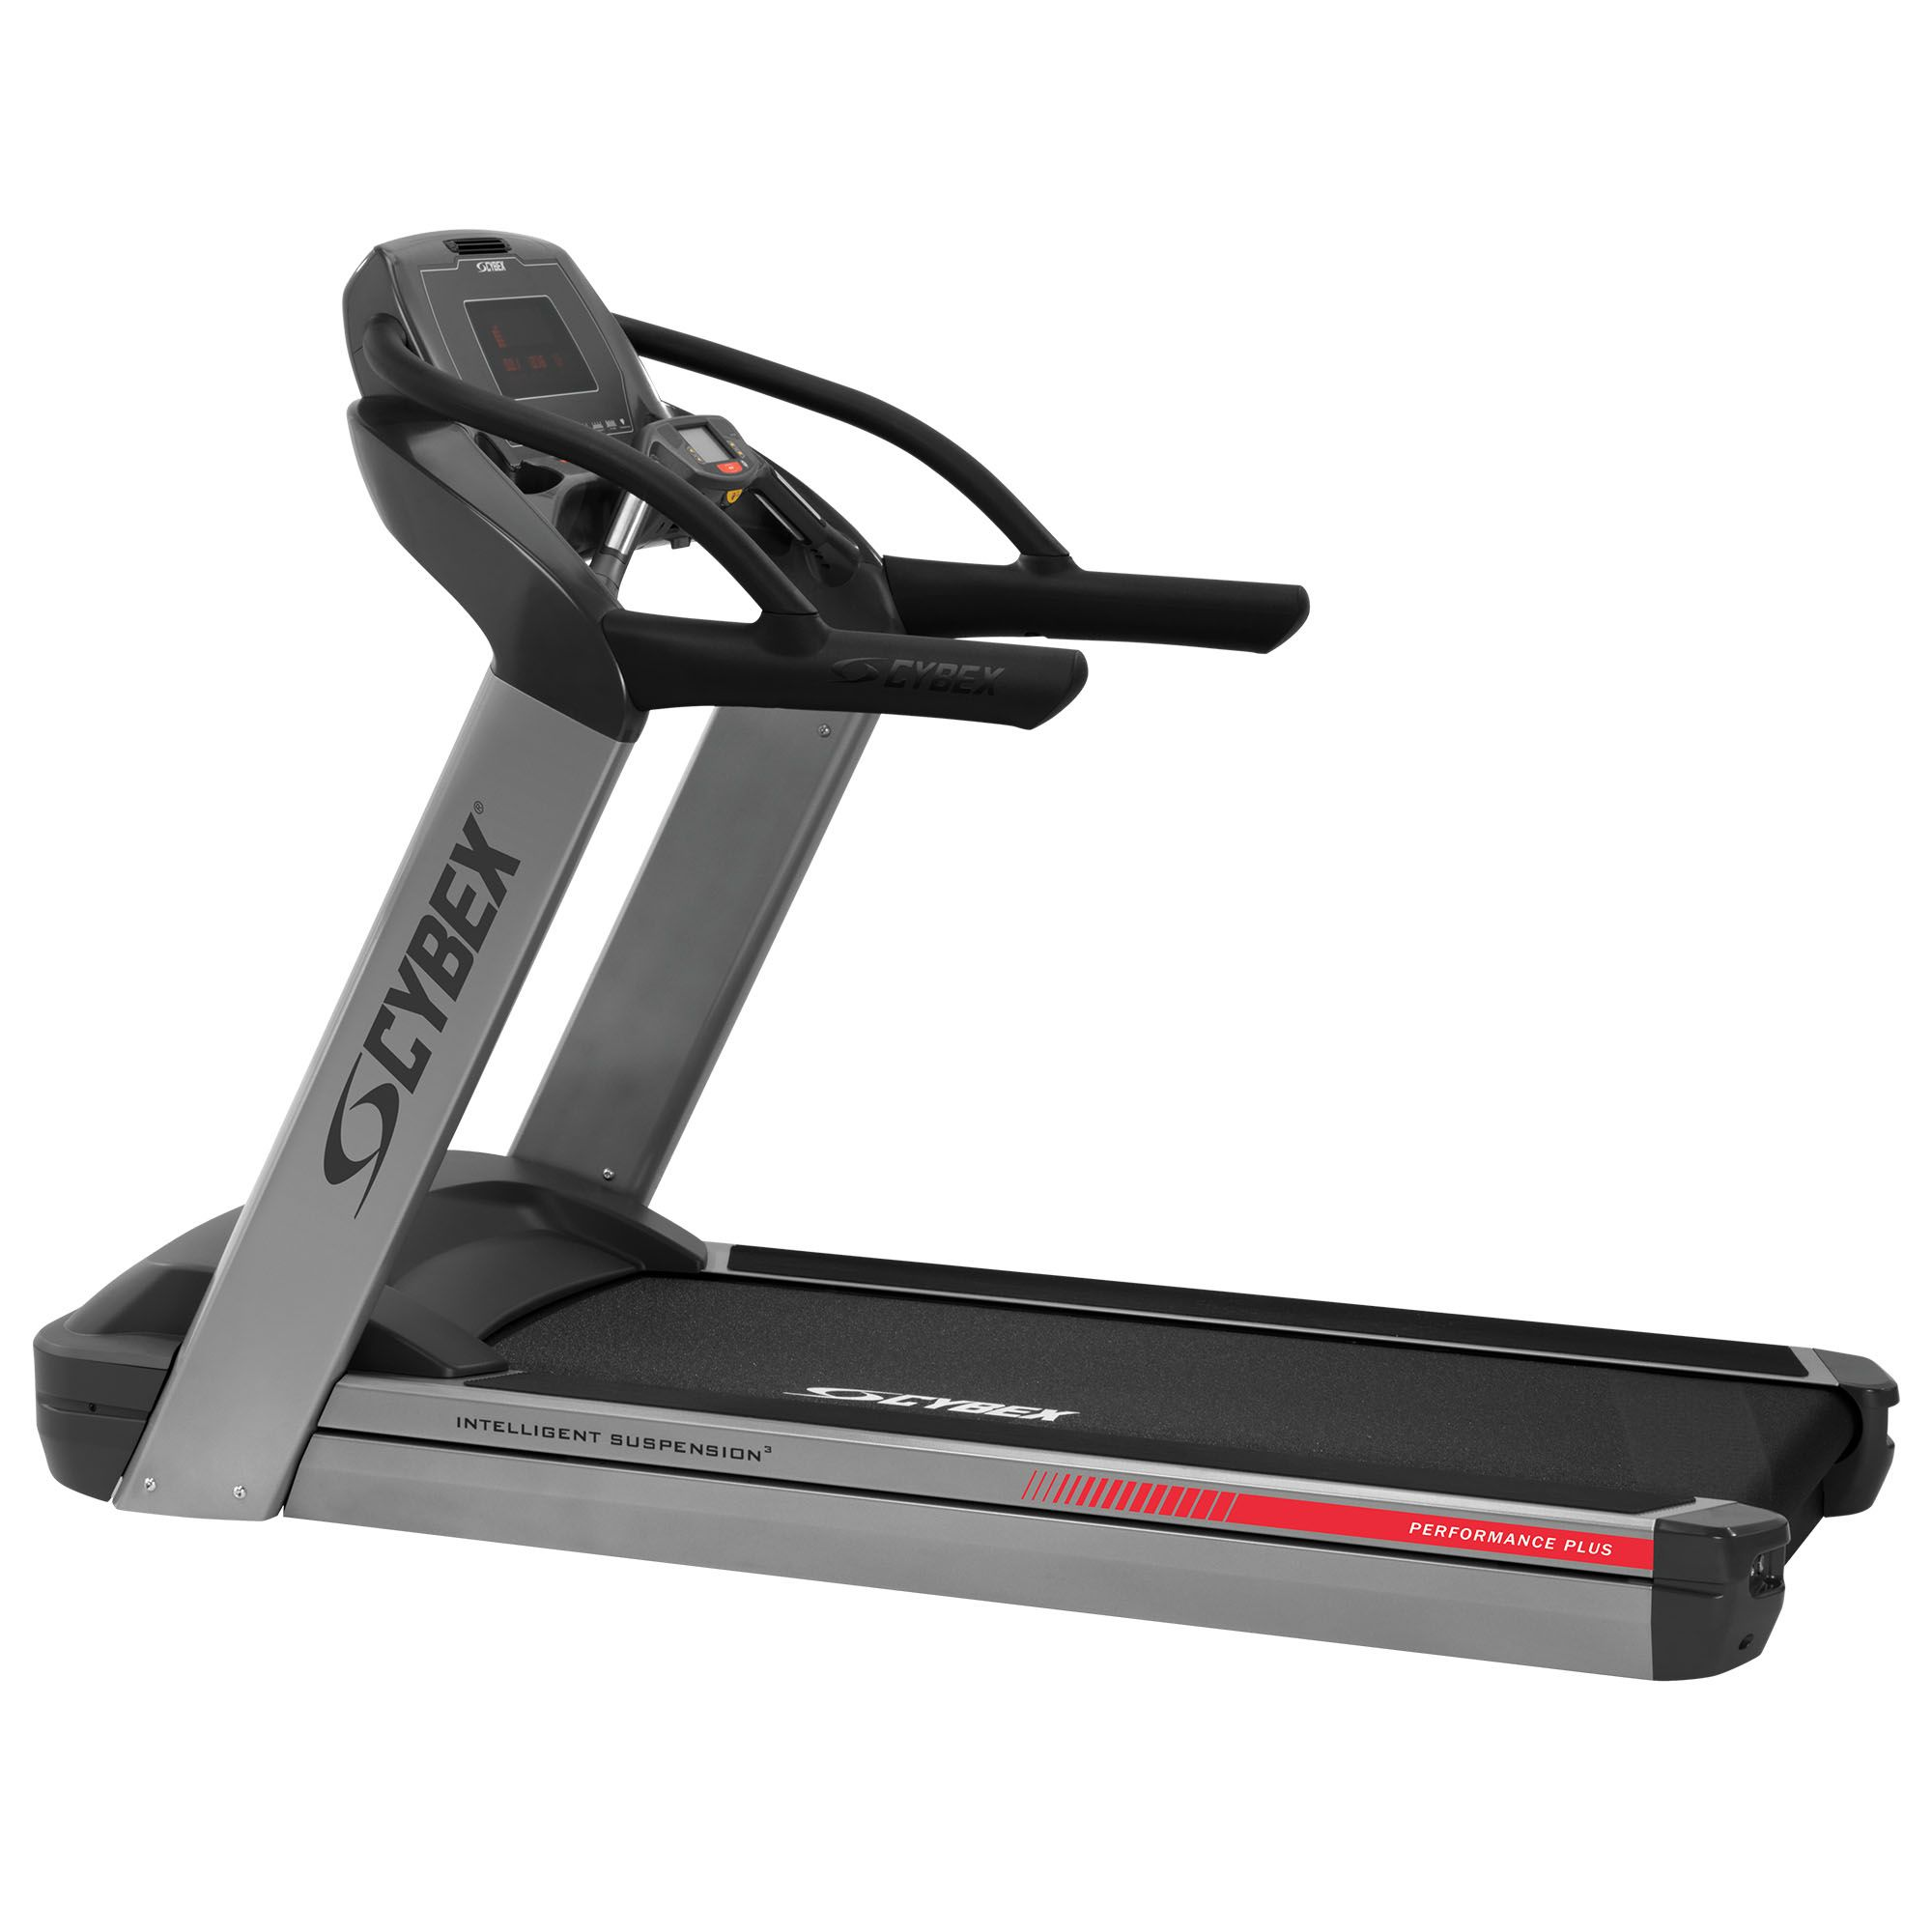 Cybex Treadmill Images: Cybex 790T Treadmill With E3 View Embedded Monitor